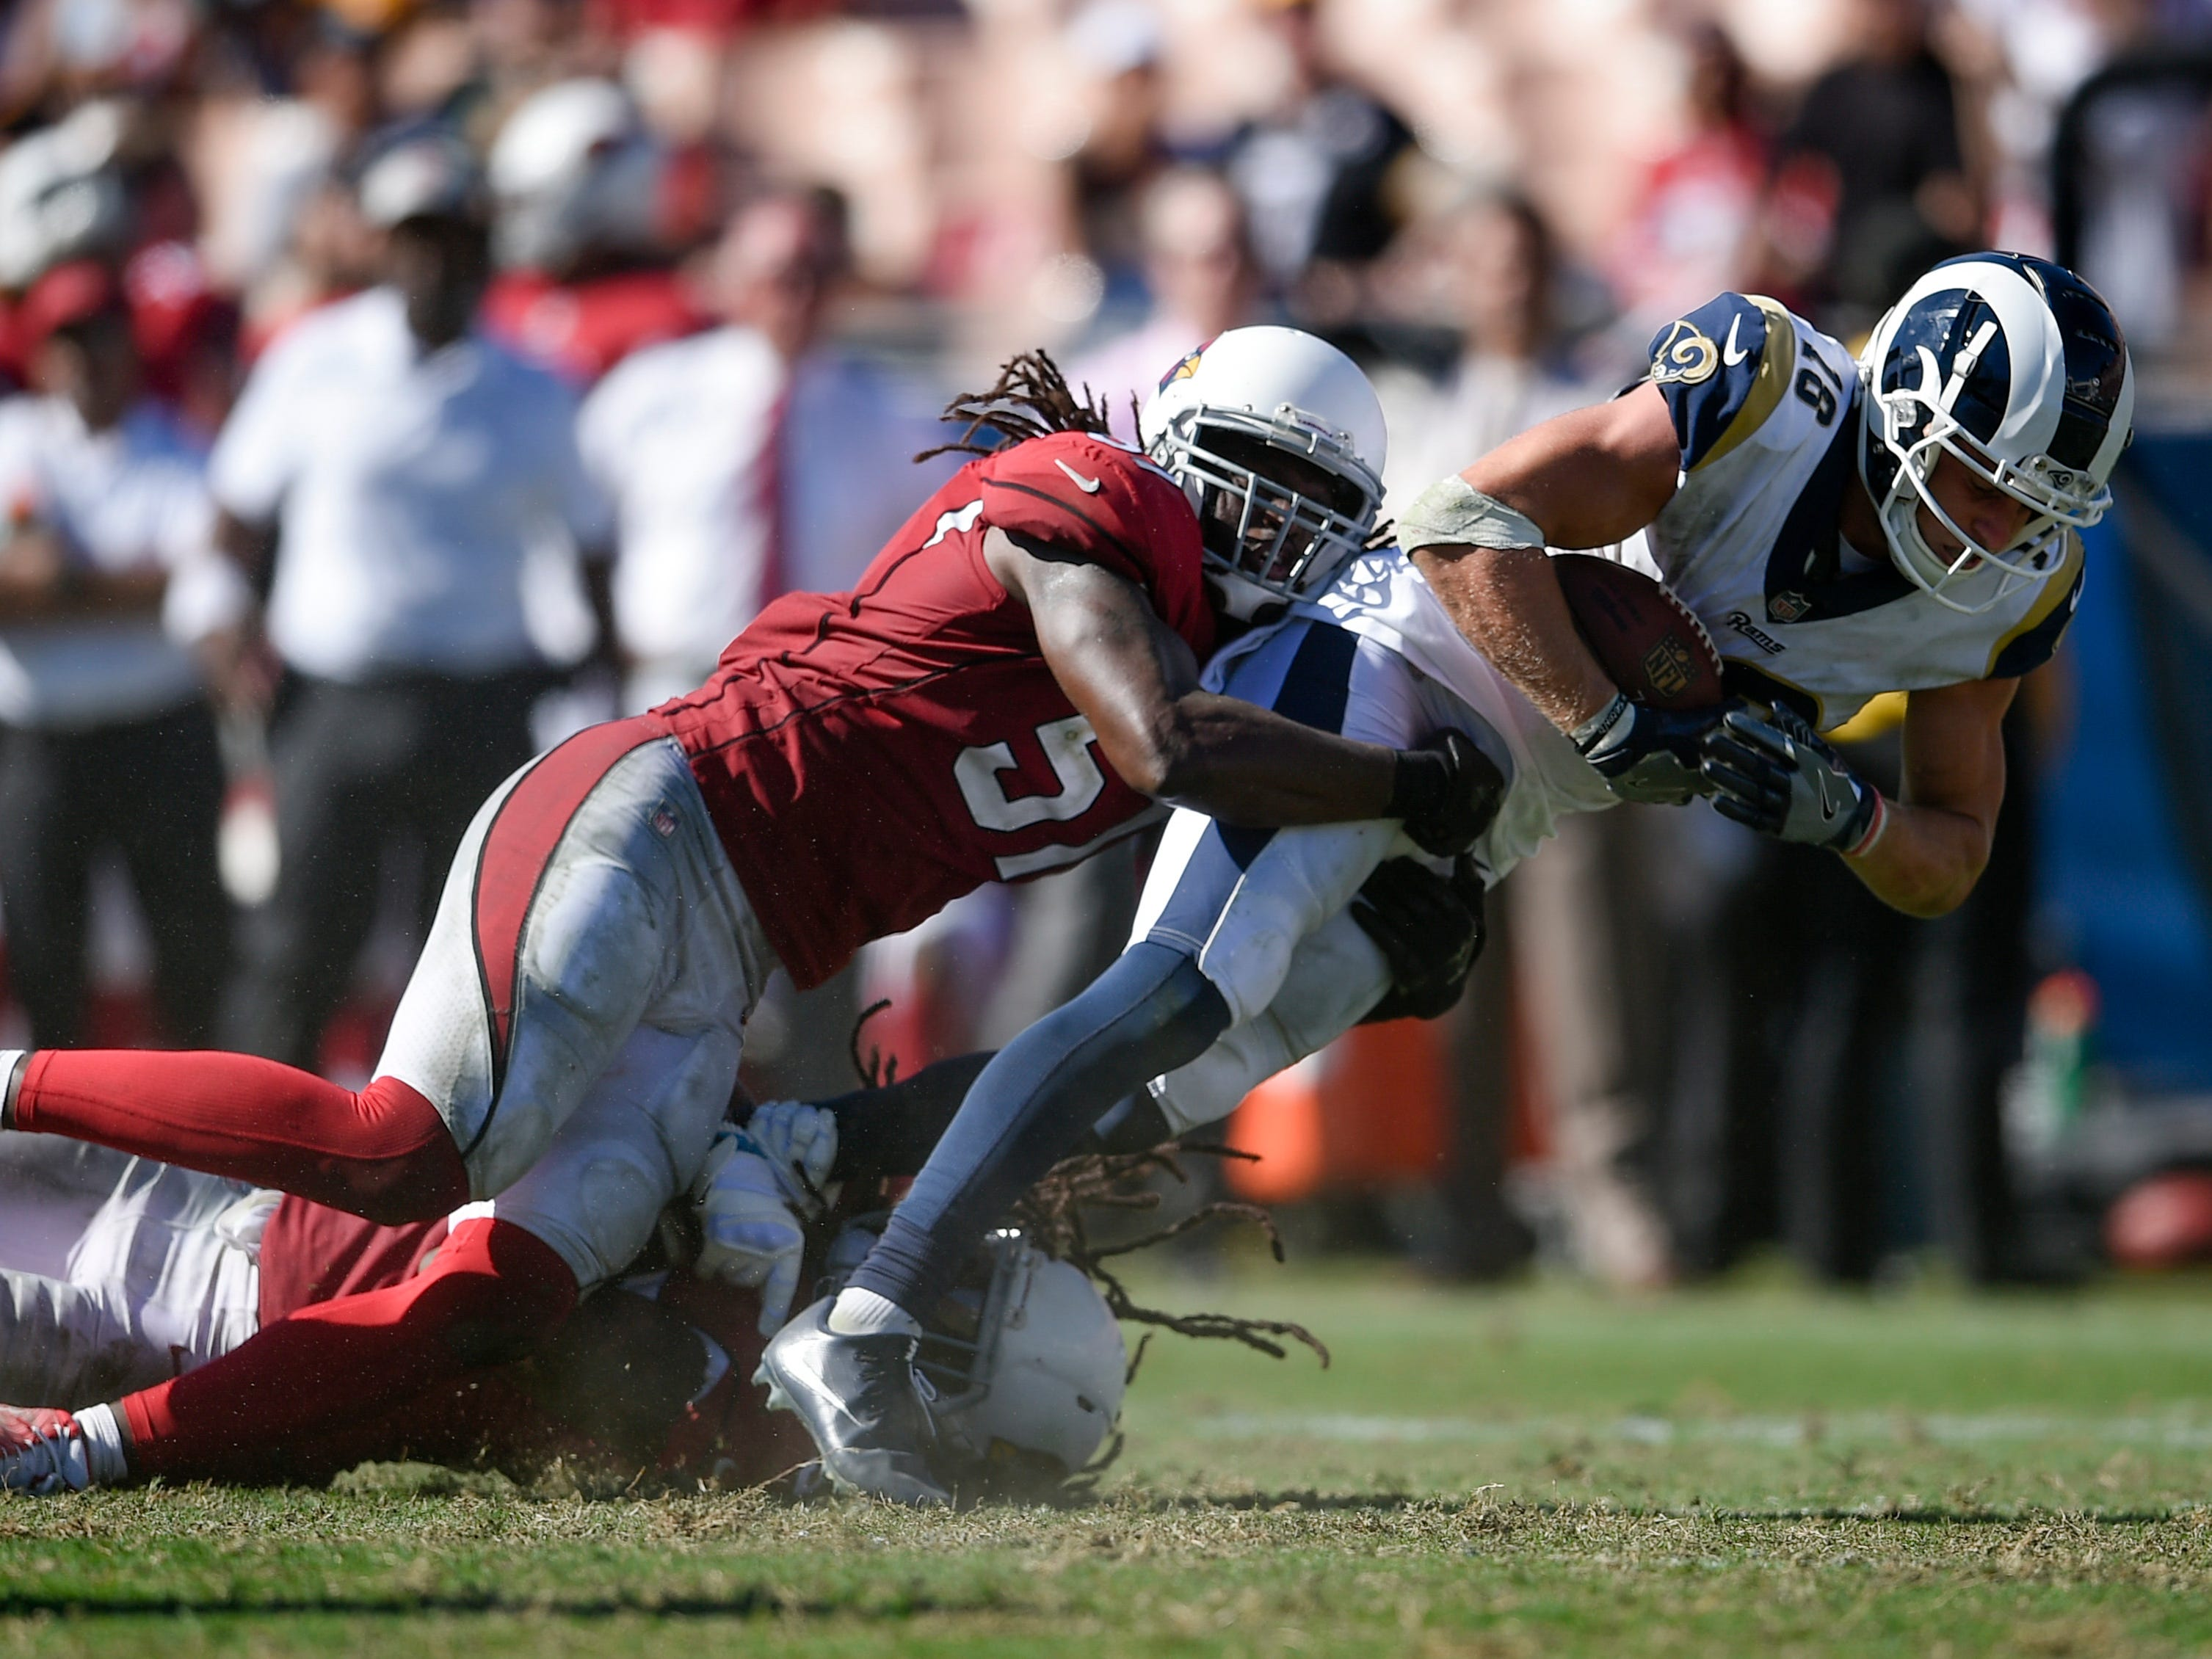 Sep 16, 2018; Los Angeles, CA, USA; Los Angeles Rams wide receiver Cooper Kupp (18) falls for extra yards while being tackled by Arizona Cardinals linebacker Josh Bynes (57) during the second half at Los Angeles Memorial Coliseum. Mandatory Credit: Kelvin Kuo-USA TODAY Sports